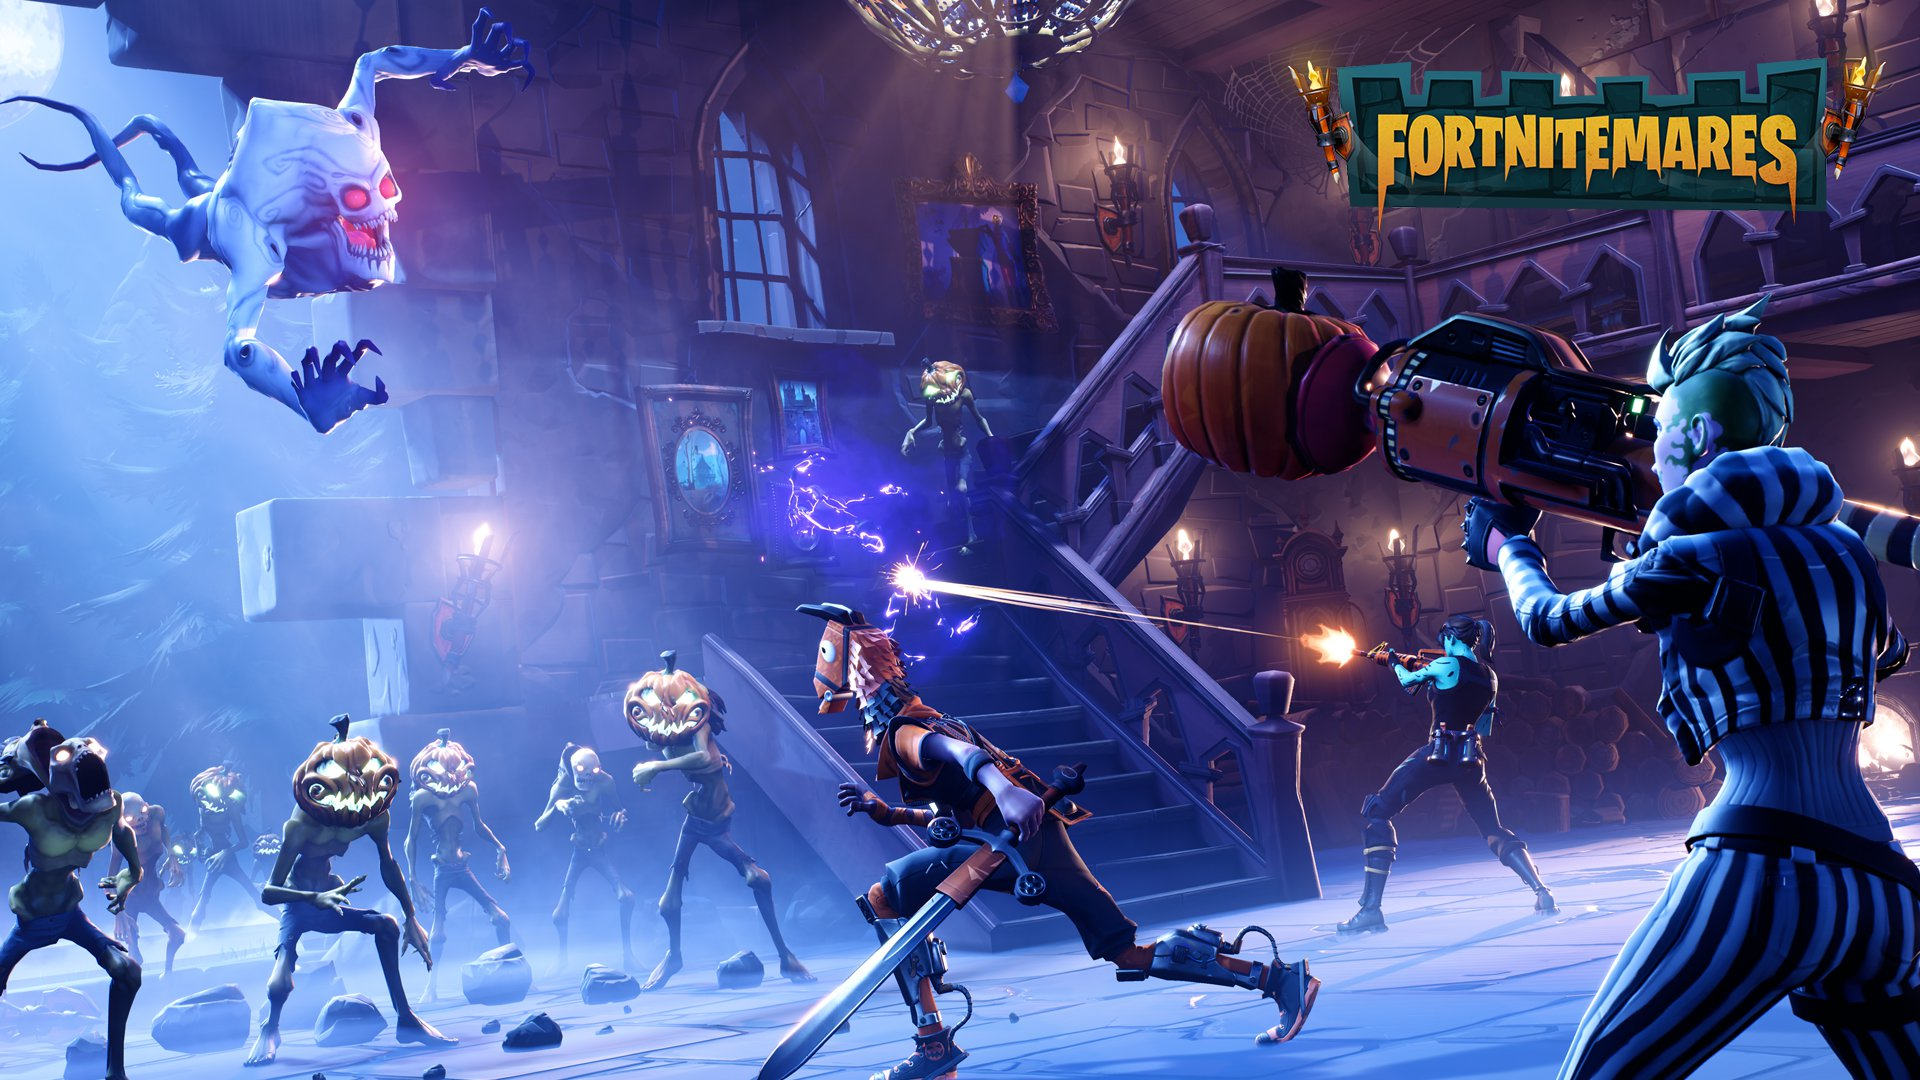 Fortnite S New Update Is Cool But It Doesn T Fix Loot Boxes